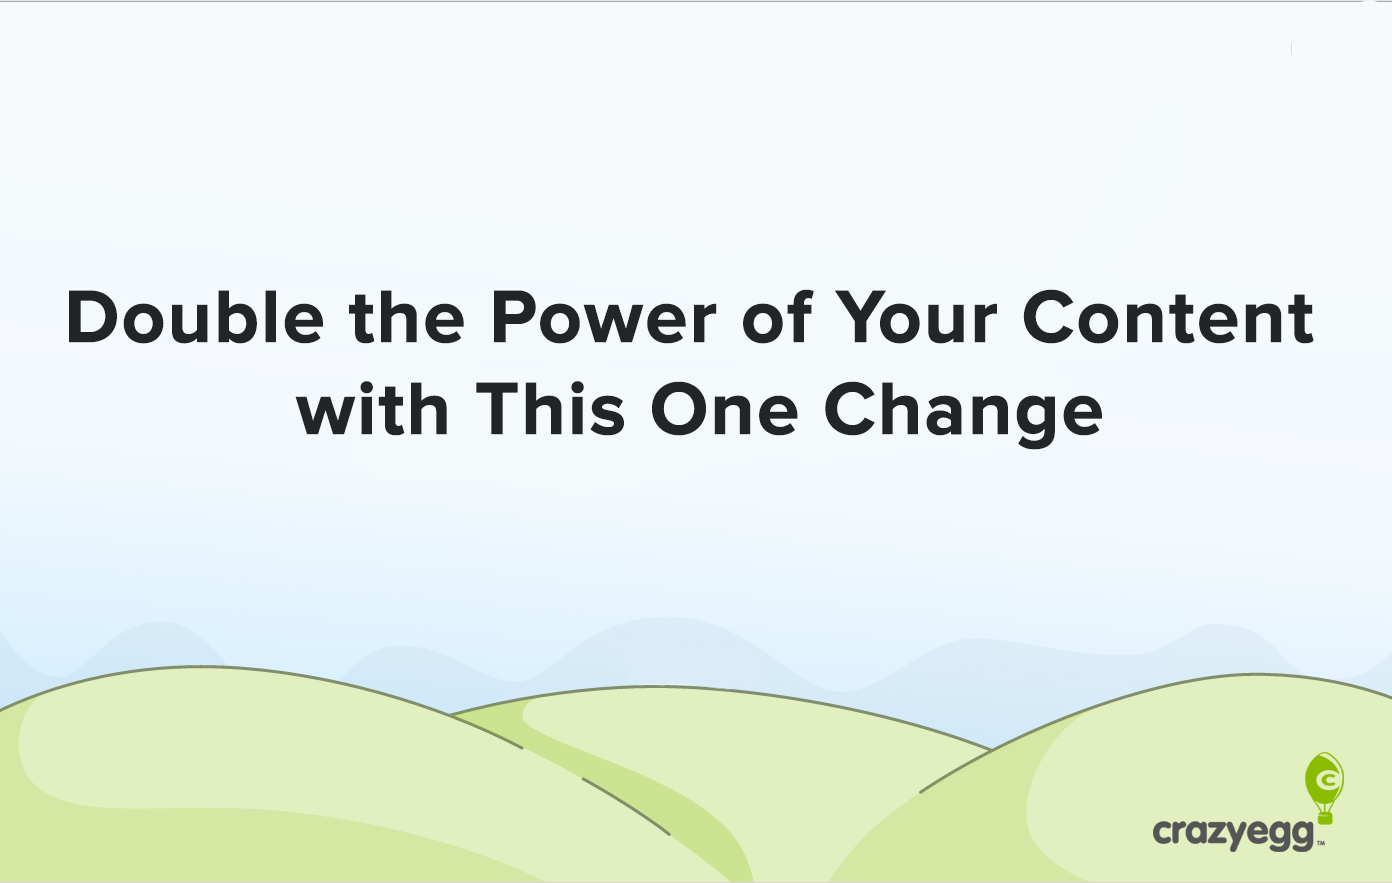 Double the Power of Your Content with This One Change